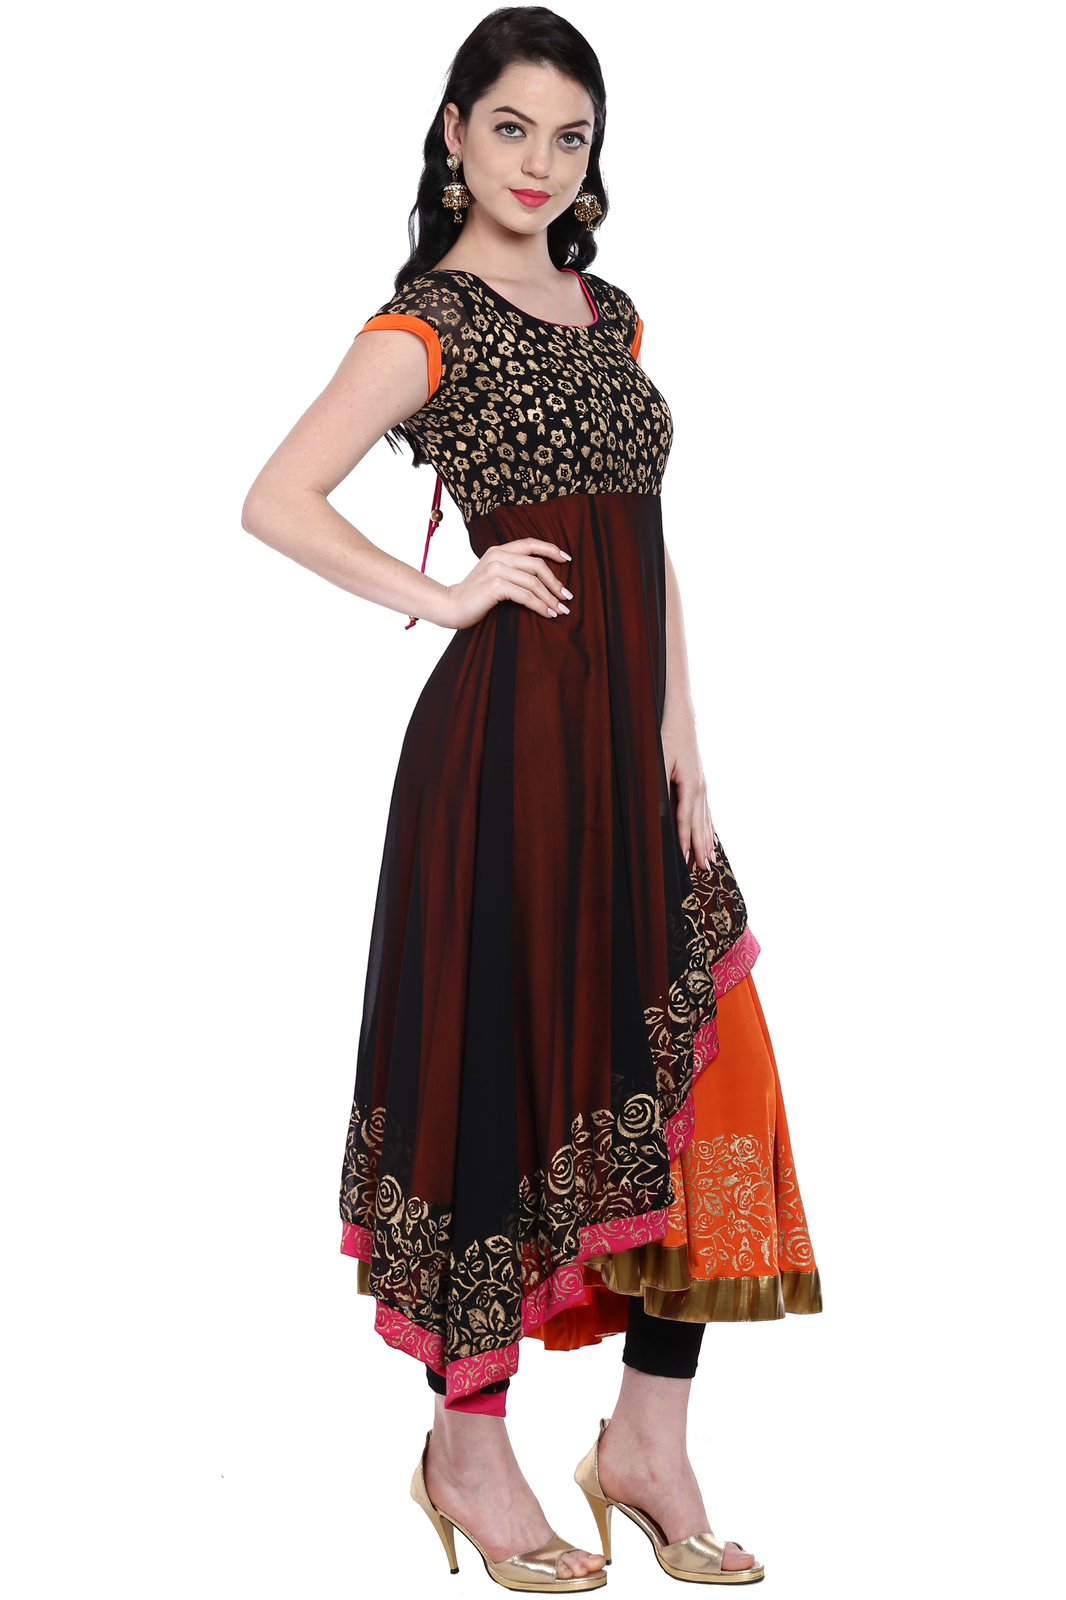 Ira Soleil double layered asymetrical hem gold printed anarkali kurti made in po